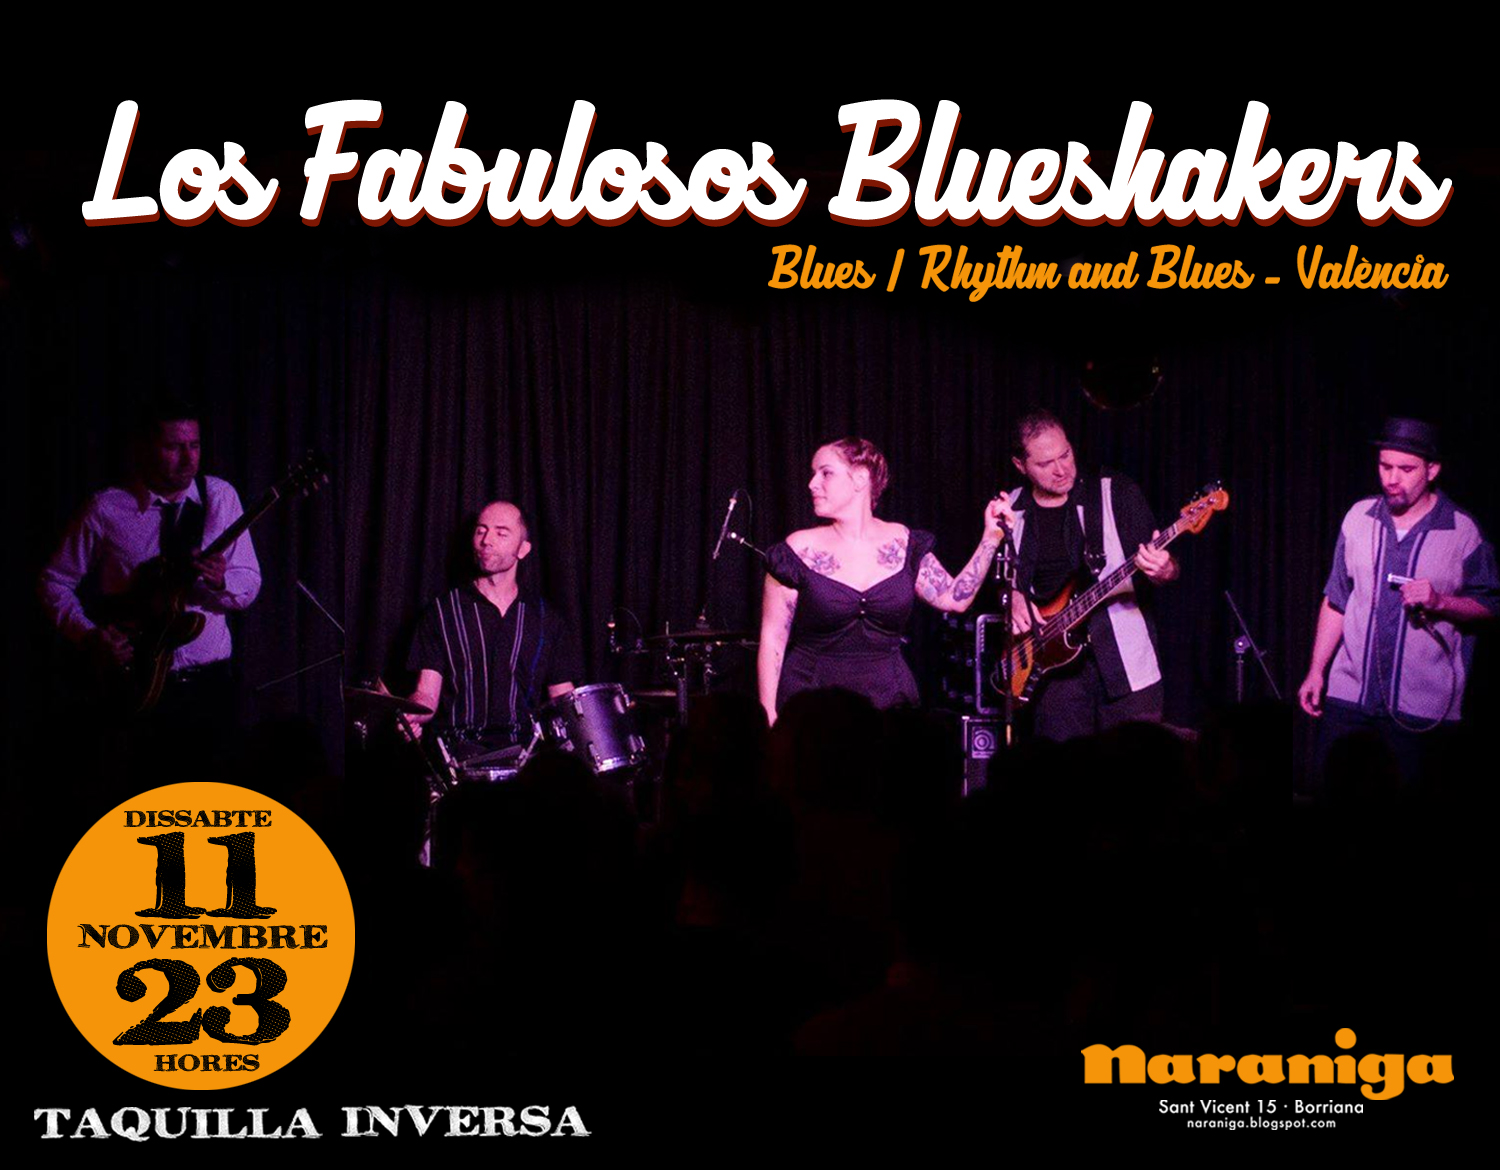 LOS FABULOSOS BLUE SHAKERS- 11 NOV 23 H.